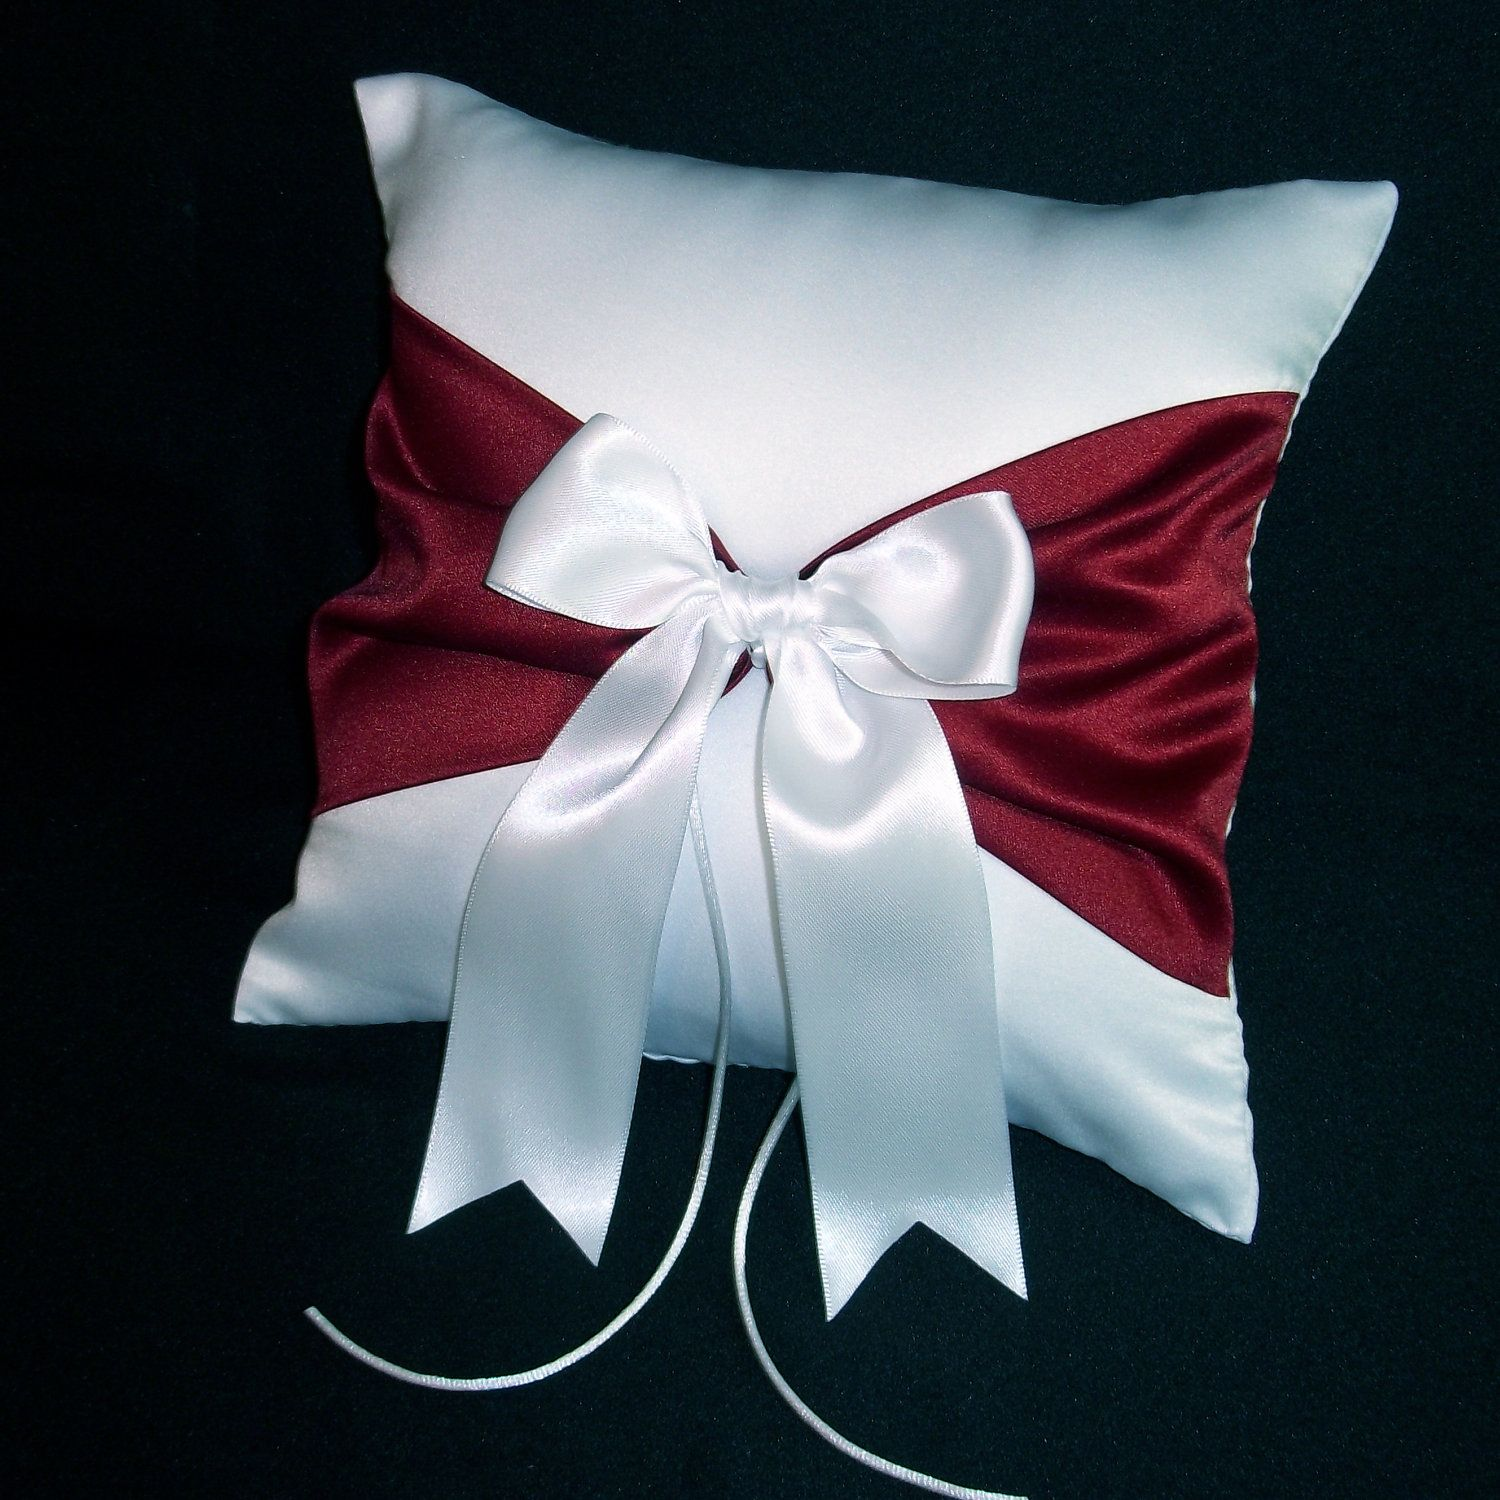 White or Ivory Wedding Ring Bearer Pillow Claret Apple Red Accent